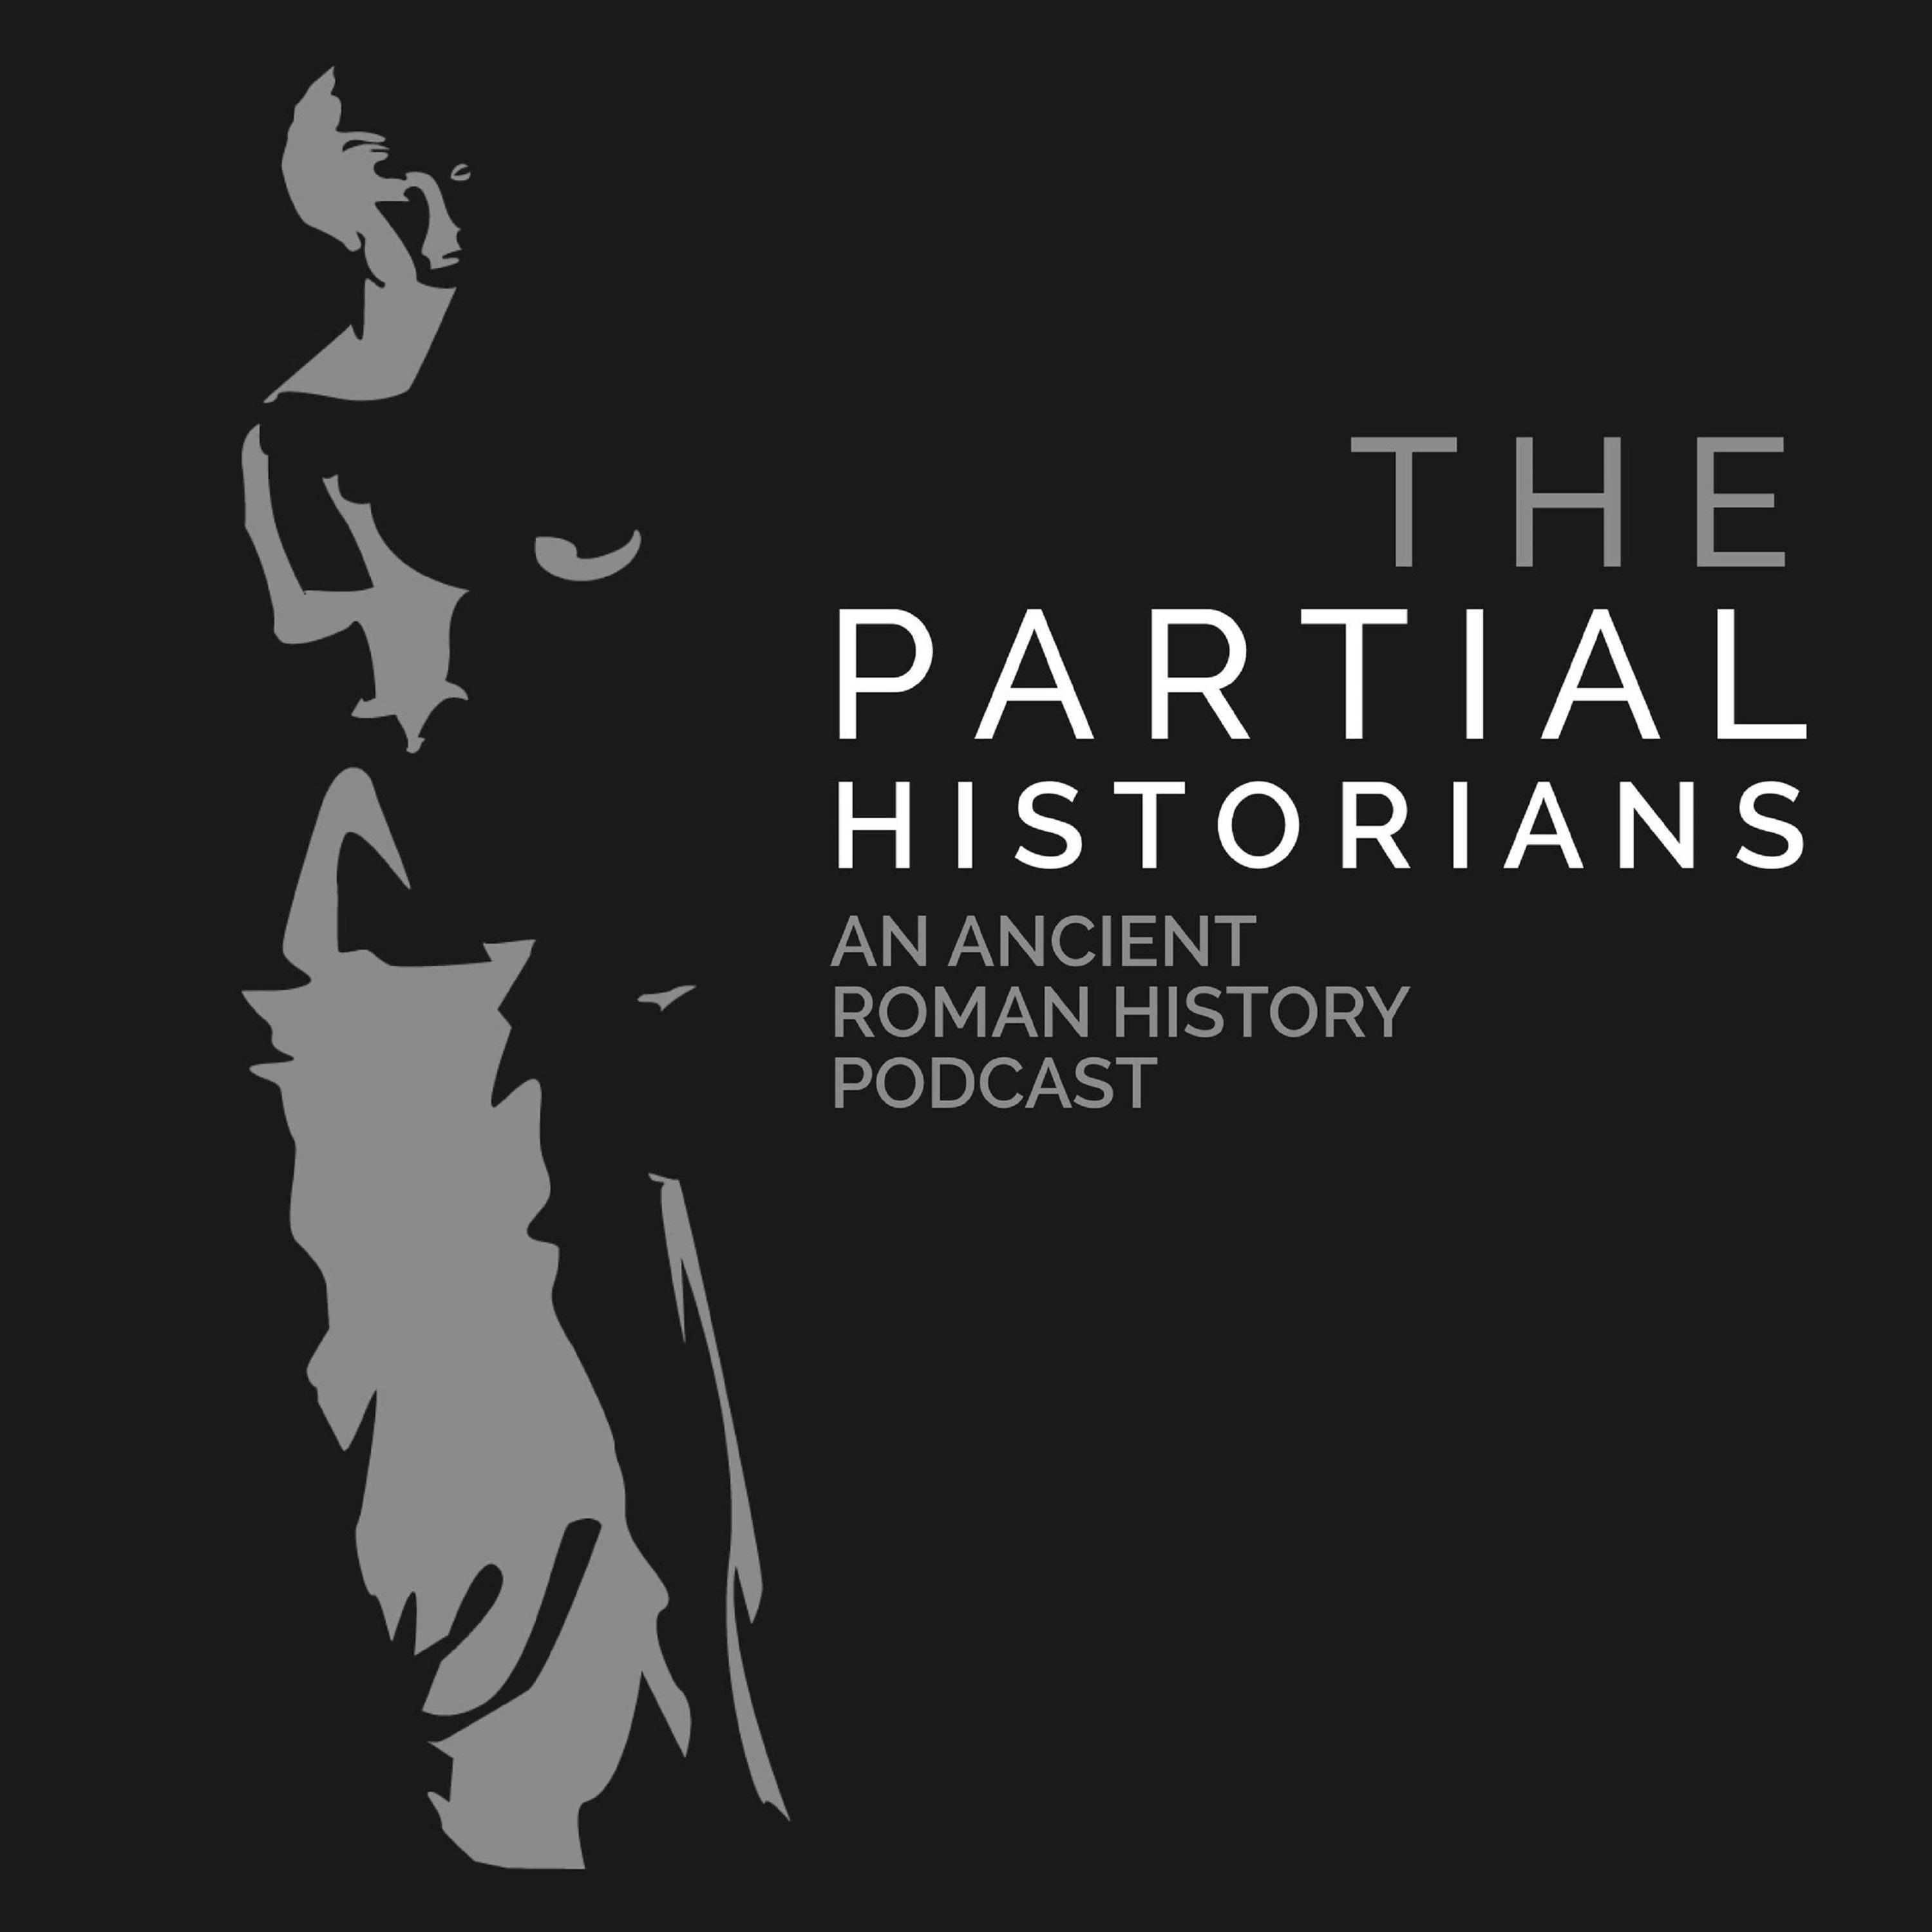 An Ancient Roman History Podcast